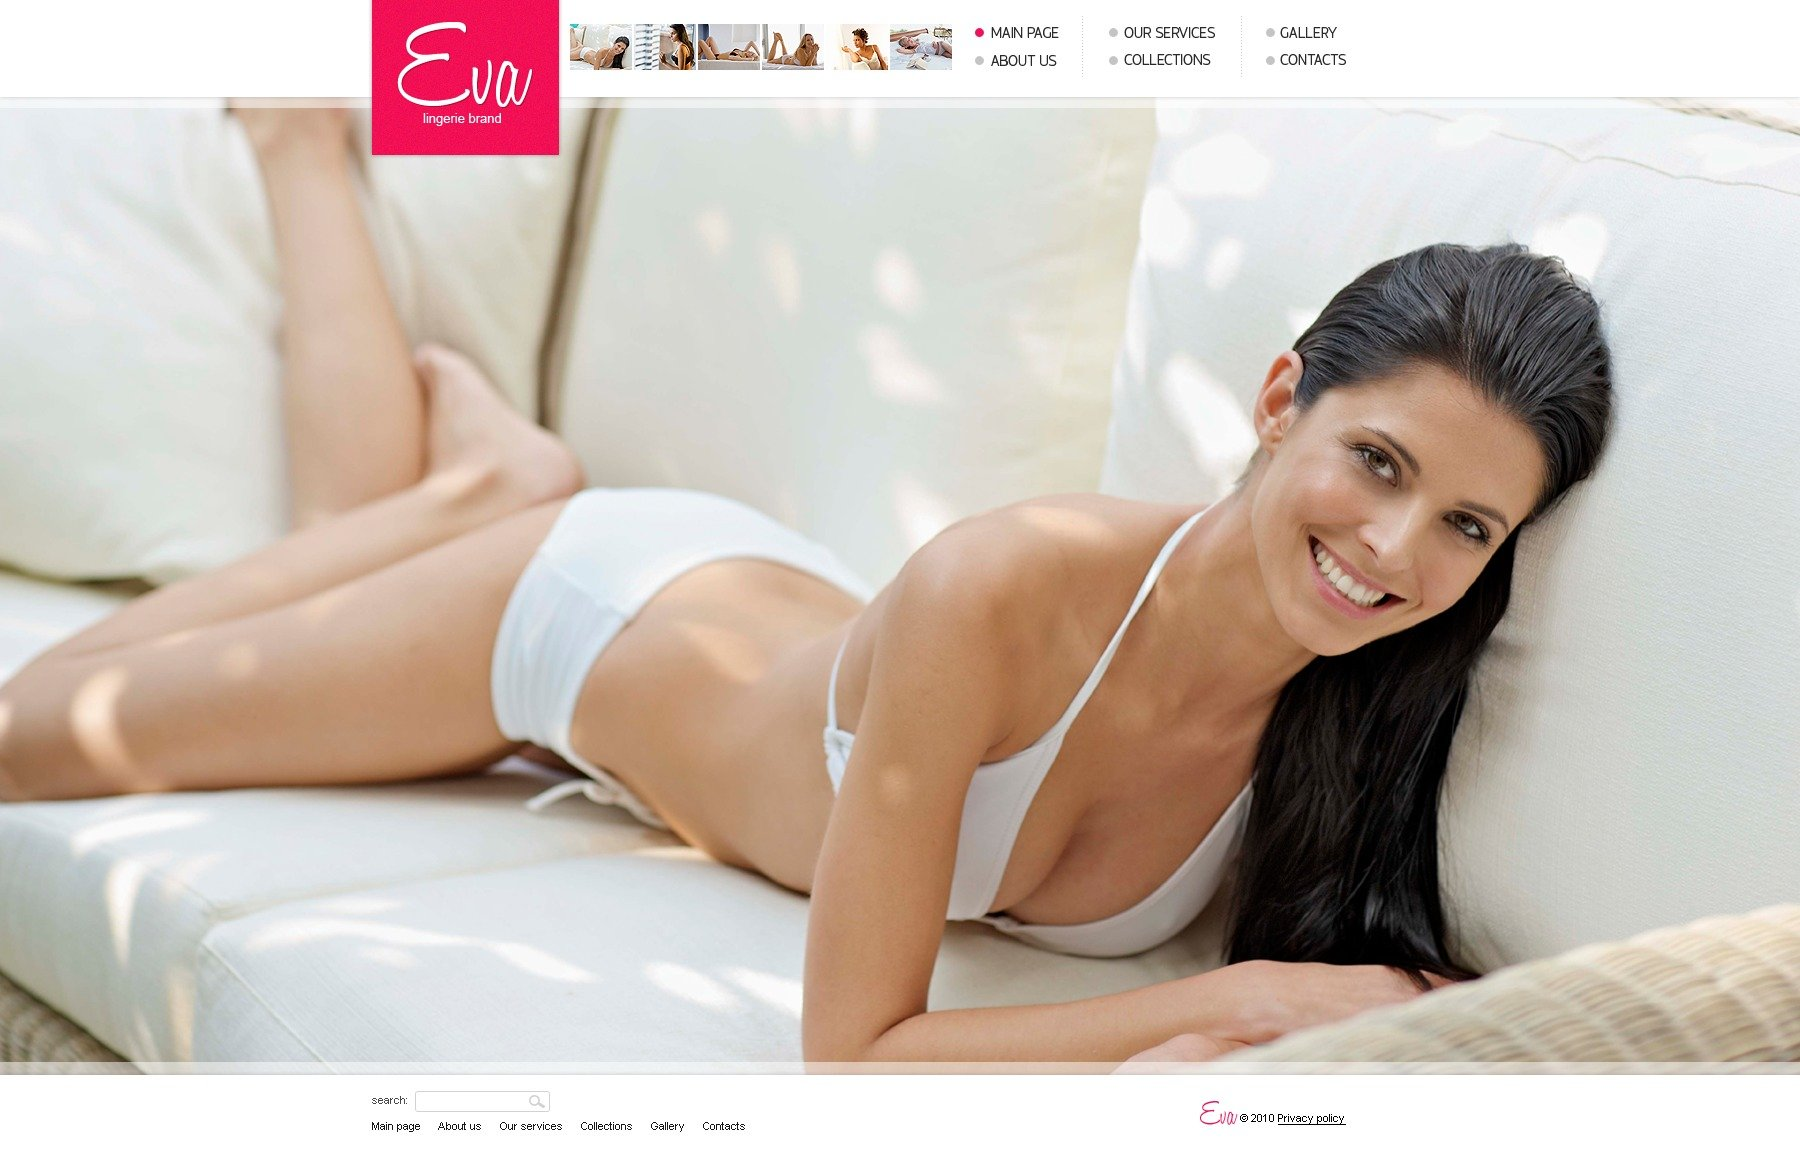 The Eva Lingerie Brand Online Store PSD Design 54280, one of the best PSD templates of its kind (fashion, wide, jquery), also known as Eva lingerie brand online store PSD template, fashion PSD template, lingerie PSD template, brand company PSD template, women PSD template, sexy classic PSD template, stylish  different PSD template, color PSD template, size PSD template, style PSD template, cobweb pants PSD template, brassier PSD template, collection PSD template, catalog PSD template, night-dress PSD template, tempting PSD template, order PSD template, beauty PSD template, offer PSD template, services PSD template, discounts PSD template, gifts PSD template, clients PSD template, testimonials and related with Eva lingerie brand online store, fashion, lingerie, brand company, women, sexy classic, stylish  different, color, size, style, cobweb pants, brassier, collection, catalog, night-dress, tempting, order, beauty, offer, services, discounts, gifts, clients, testimonials, etc.